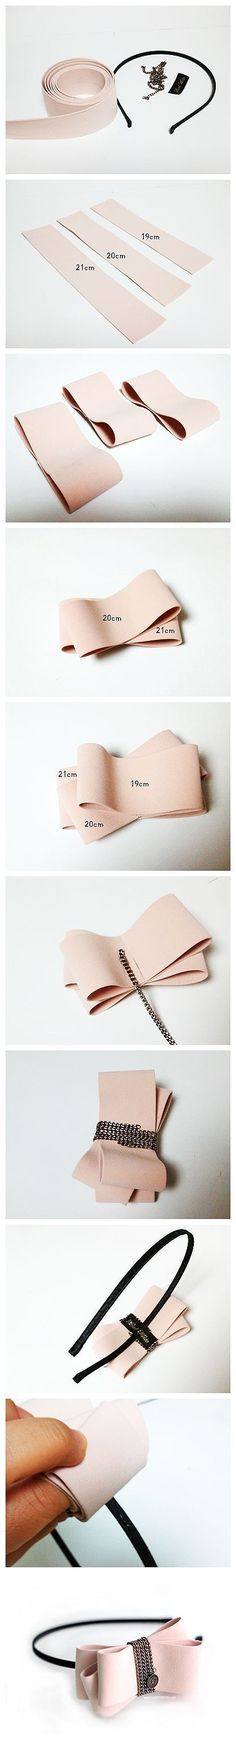 DIY Hair Bow diy crafts home made easy crafts craft idea crafts ideas diy ideas diy crafts diy idea do it yourself diy projects diy craft handmade hair bow hair accessories